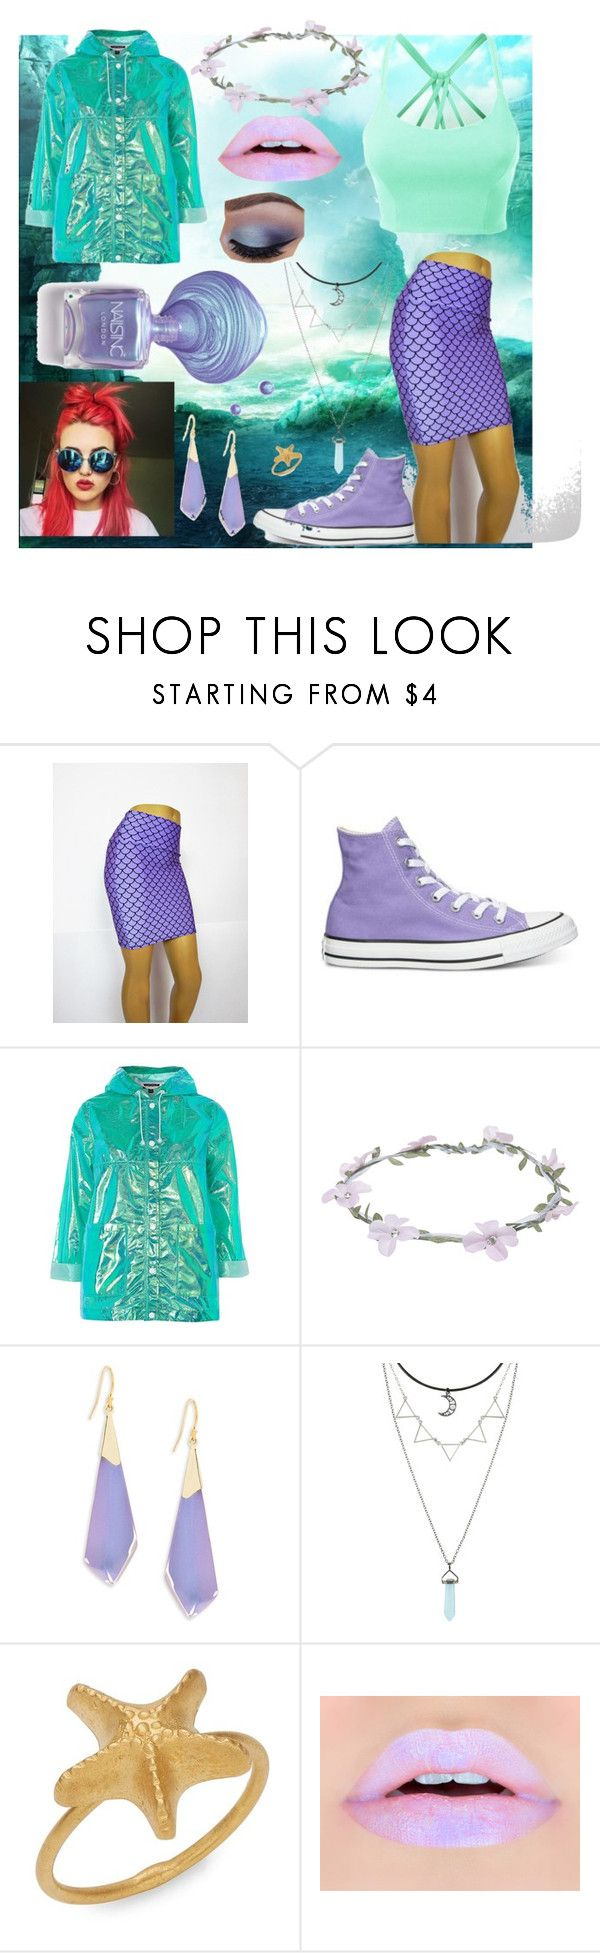 """Pastel Ariel Outfit <3"" by thisisagoodname ❤ liked on Polyvore featuring LE3NO, Converse, Topshop, Wet Seal, Alexis Bittar, Hot Topic and Valentino"